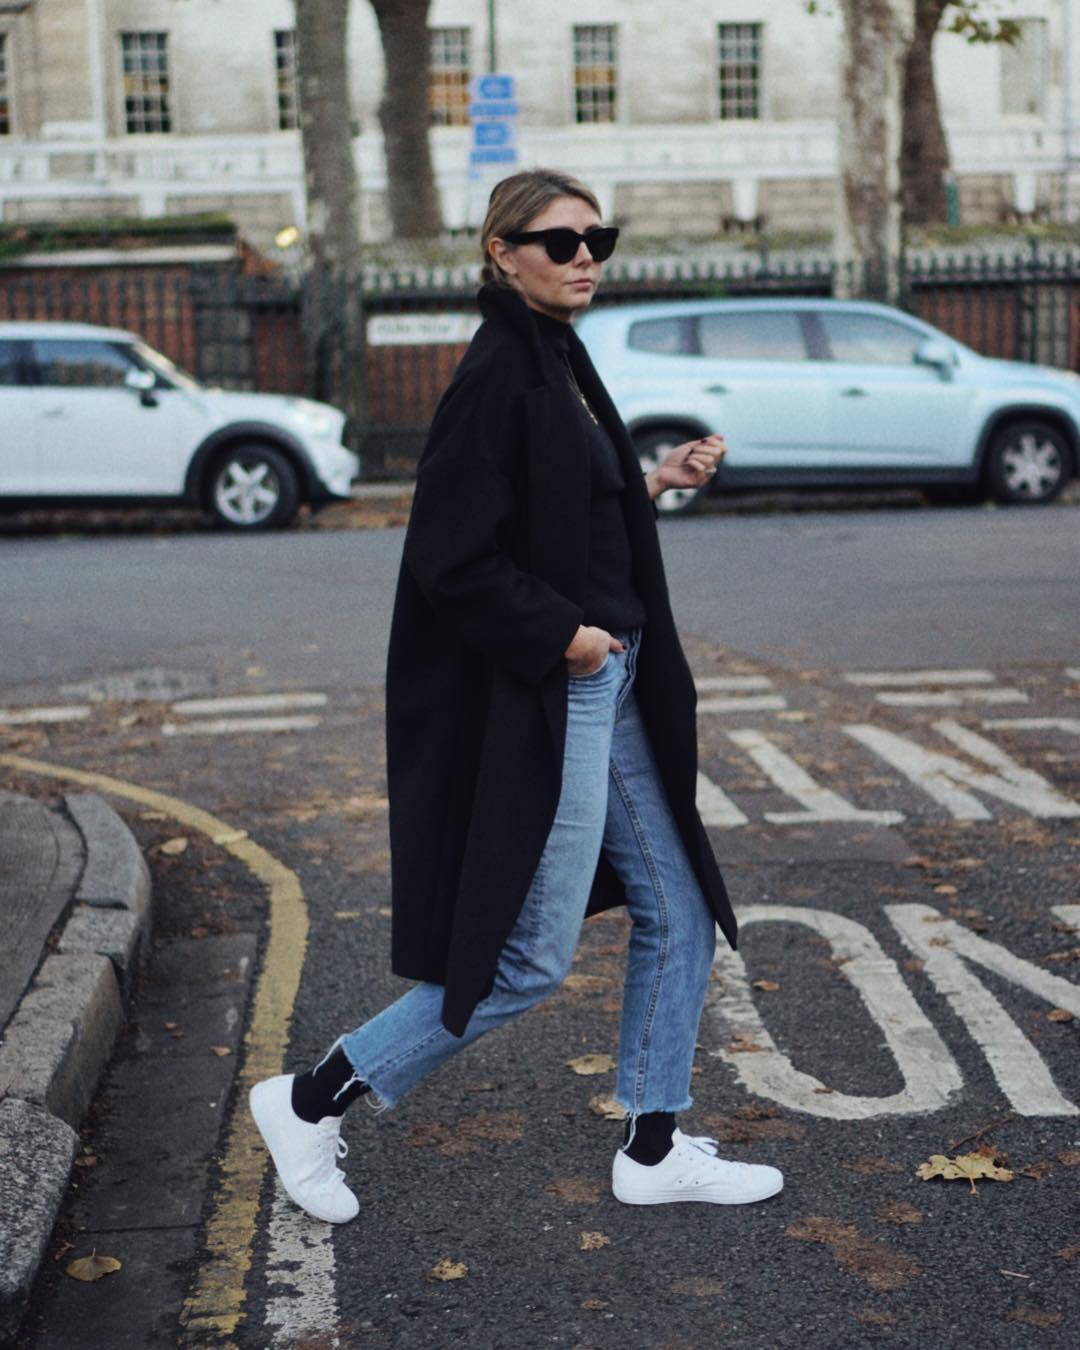 Casual Weekend Outfit for Fall — Black Coat, Raw-Hem Jeans, Black Socks, White Sneakers